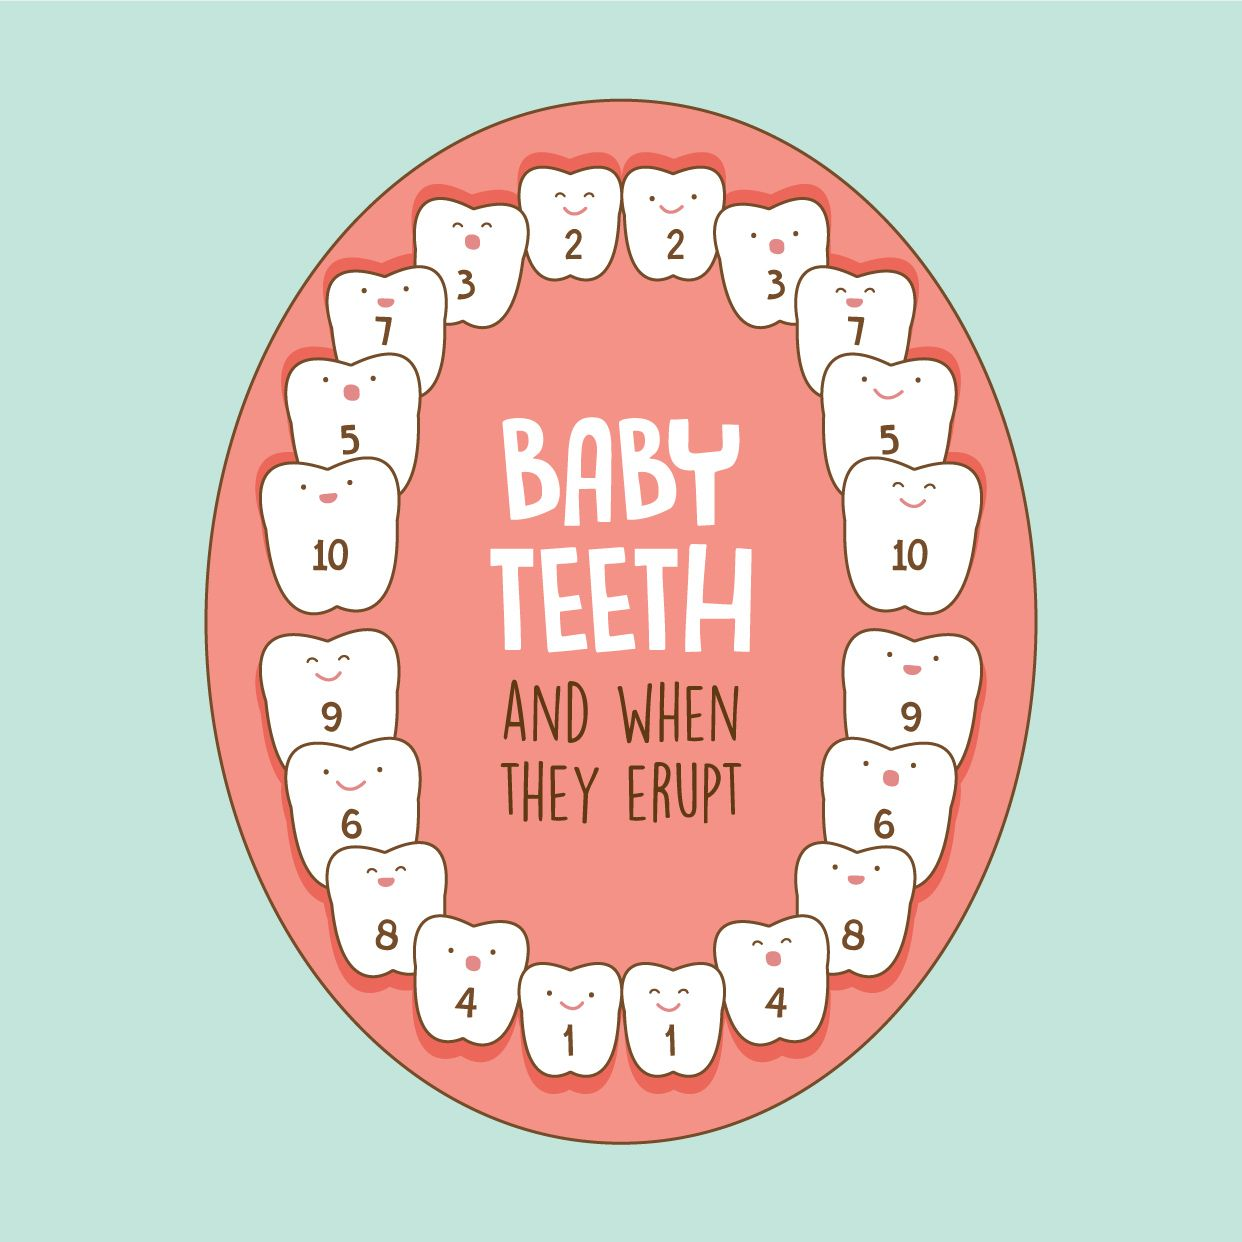 Did you know that baby teeth erupt in a particular order